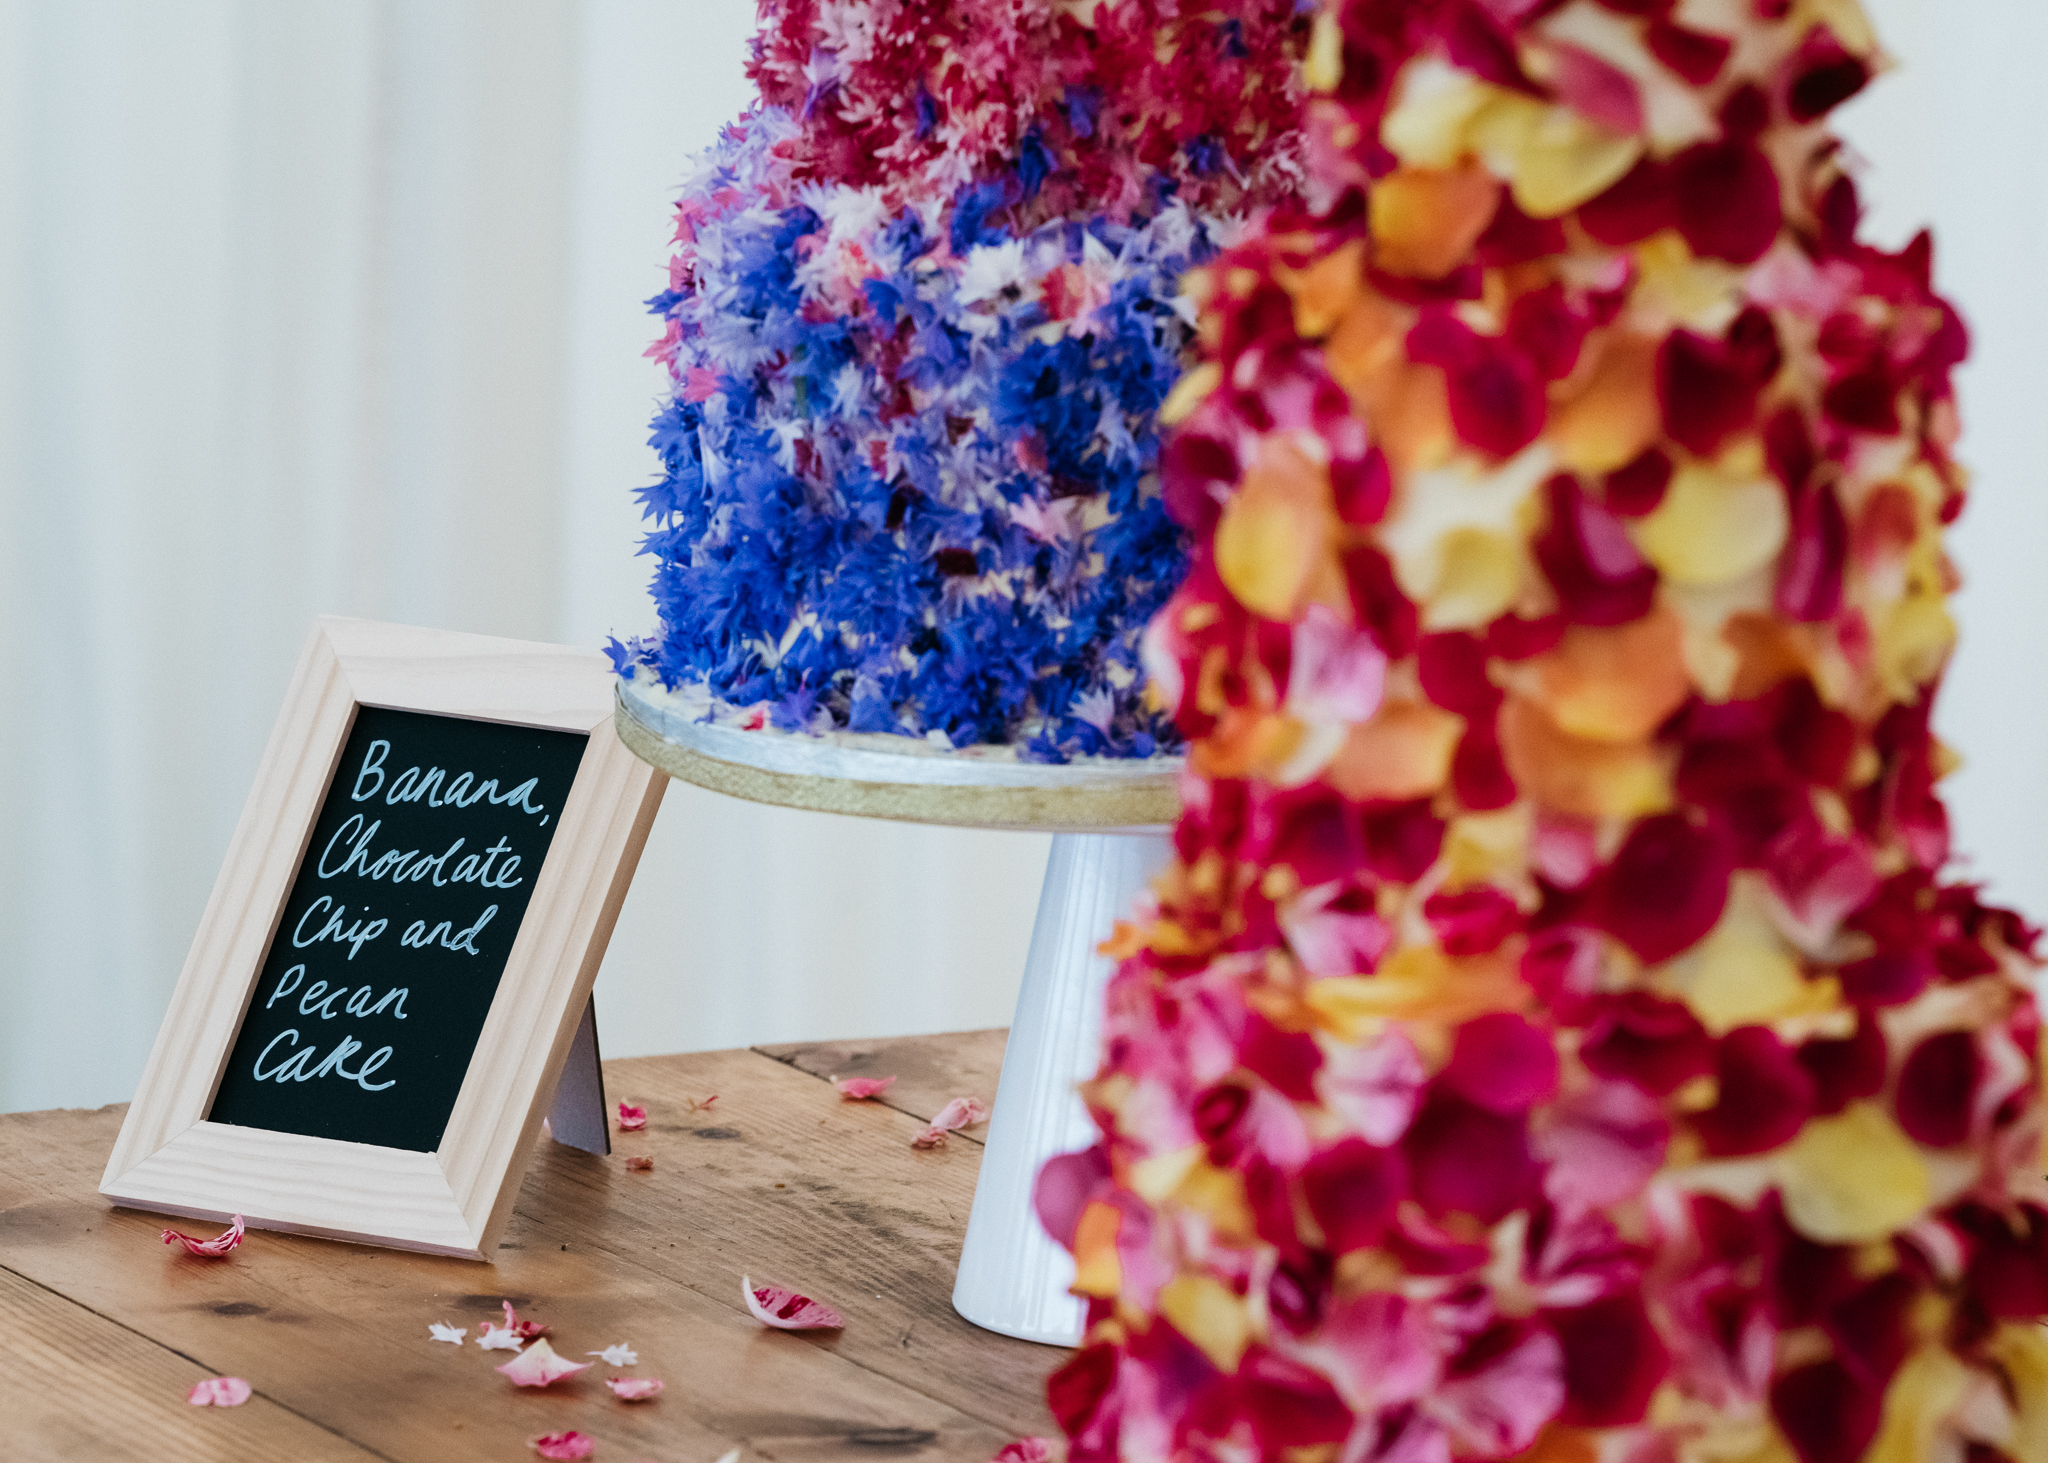 Buttercream wedding cakes with edible petals